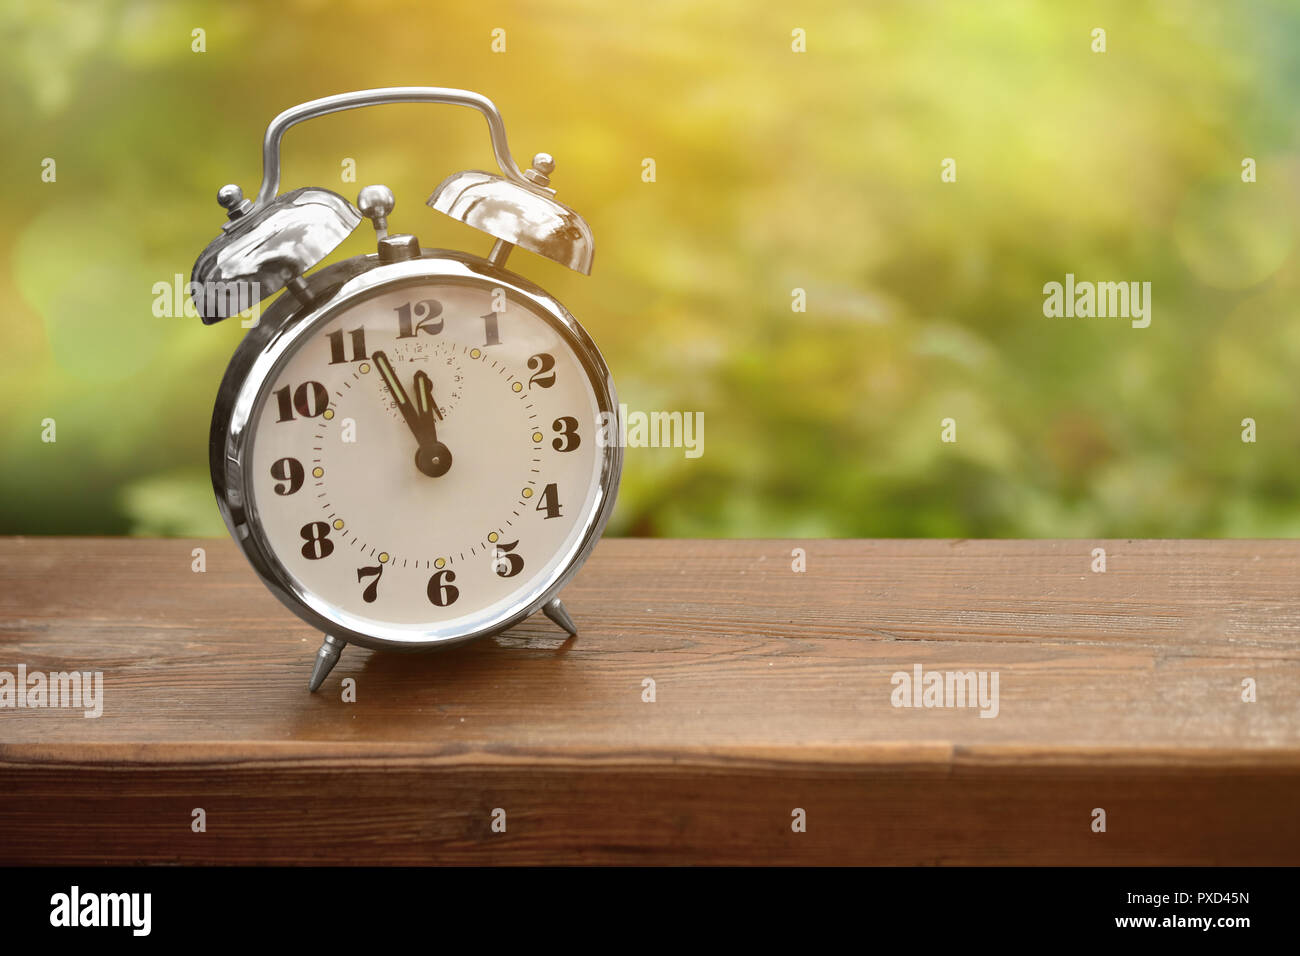 alarm clock summer appointment holidays urgent school - Stock Image